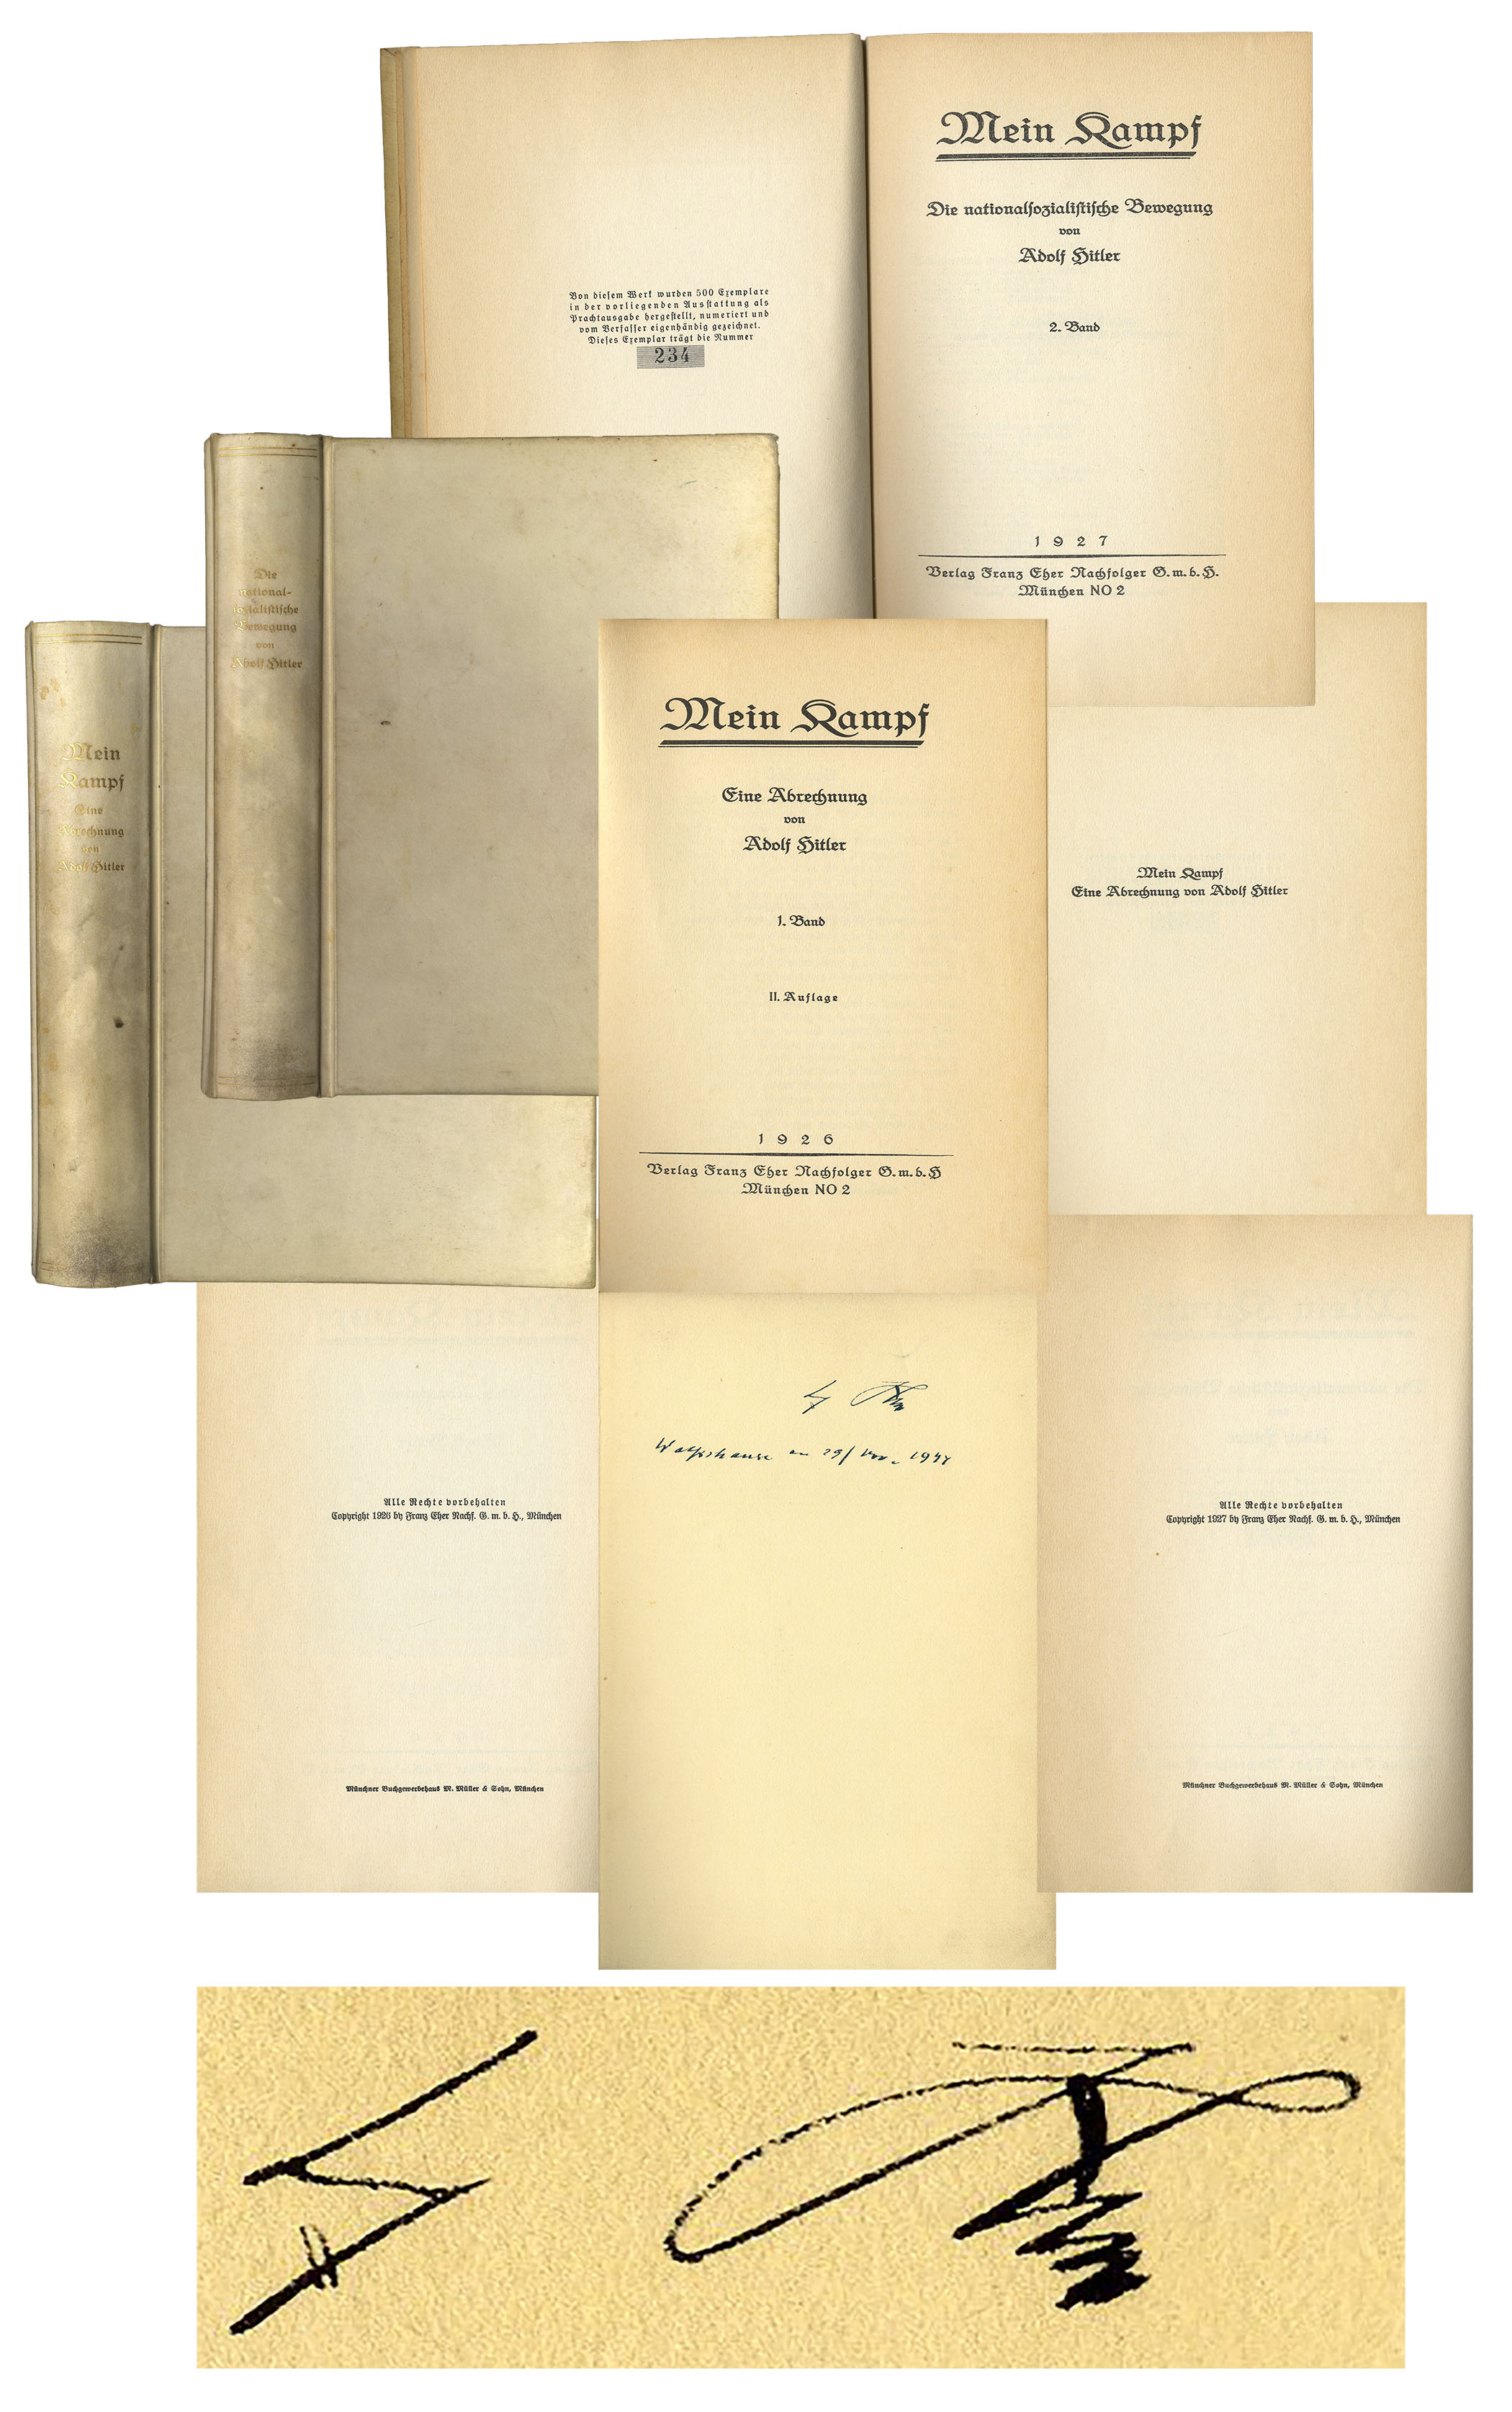 mein kampf first edition pdf